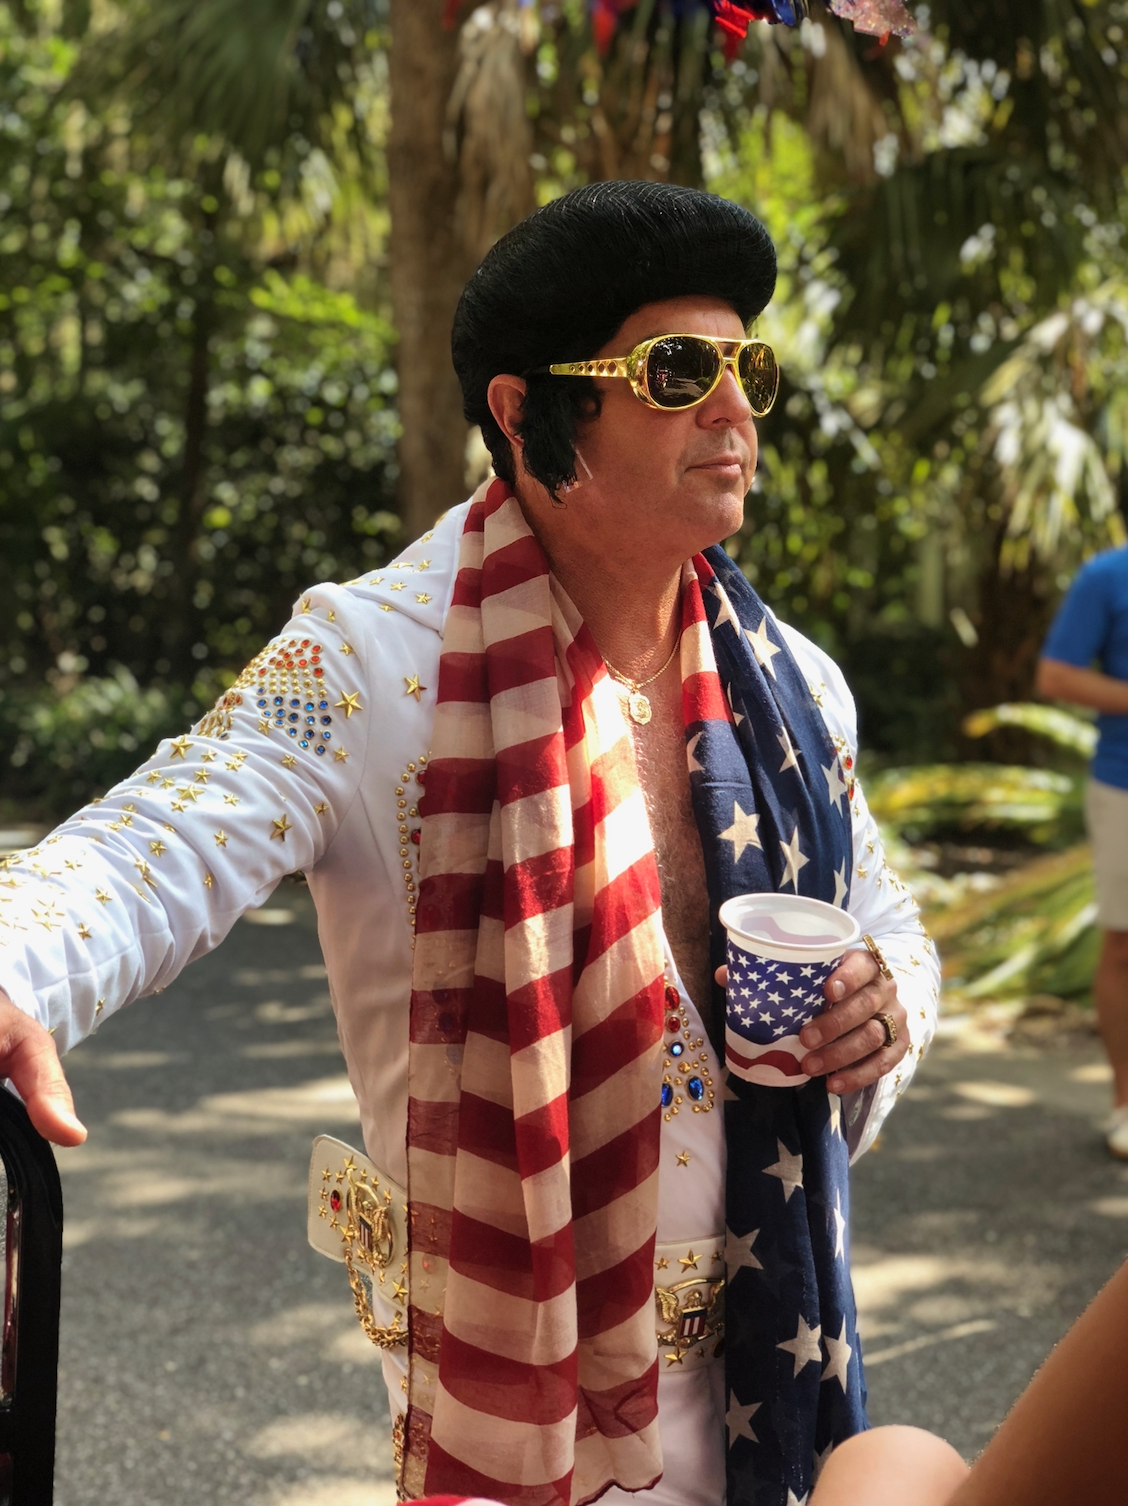 Celebrating America with the King, yours truly!